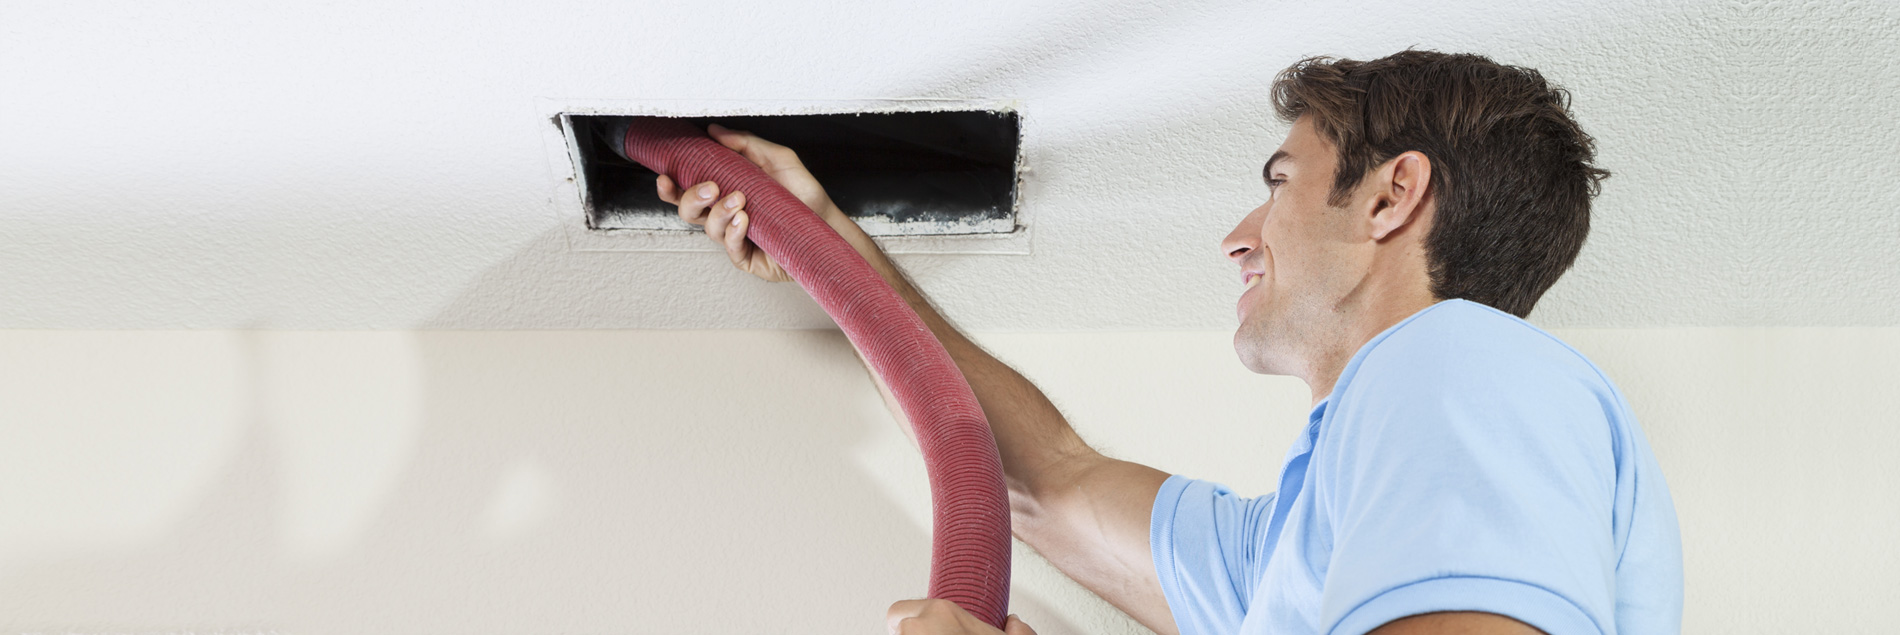 How to Hire an Air Duct Cleaning Service